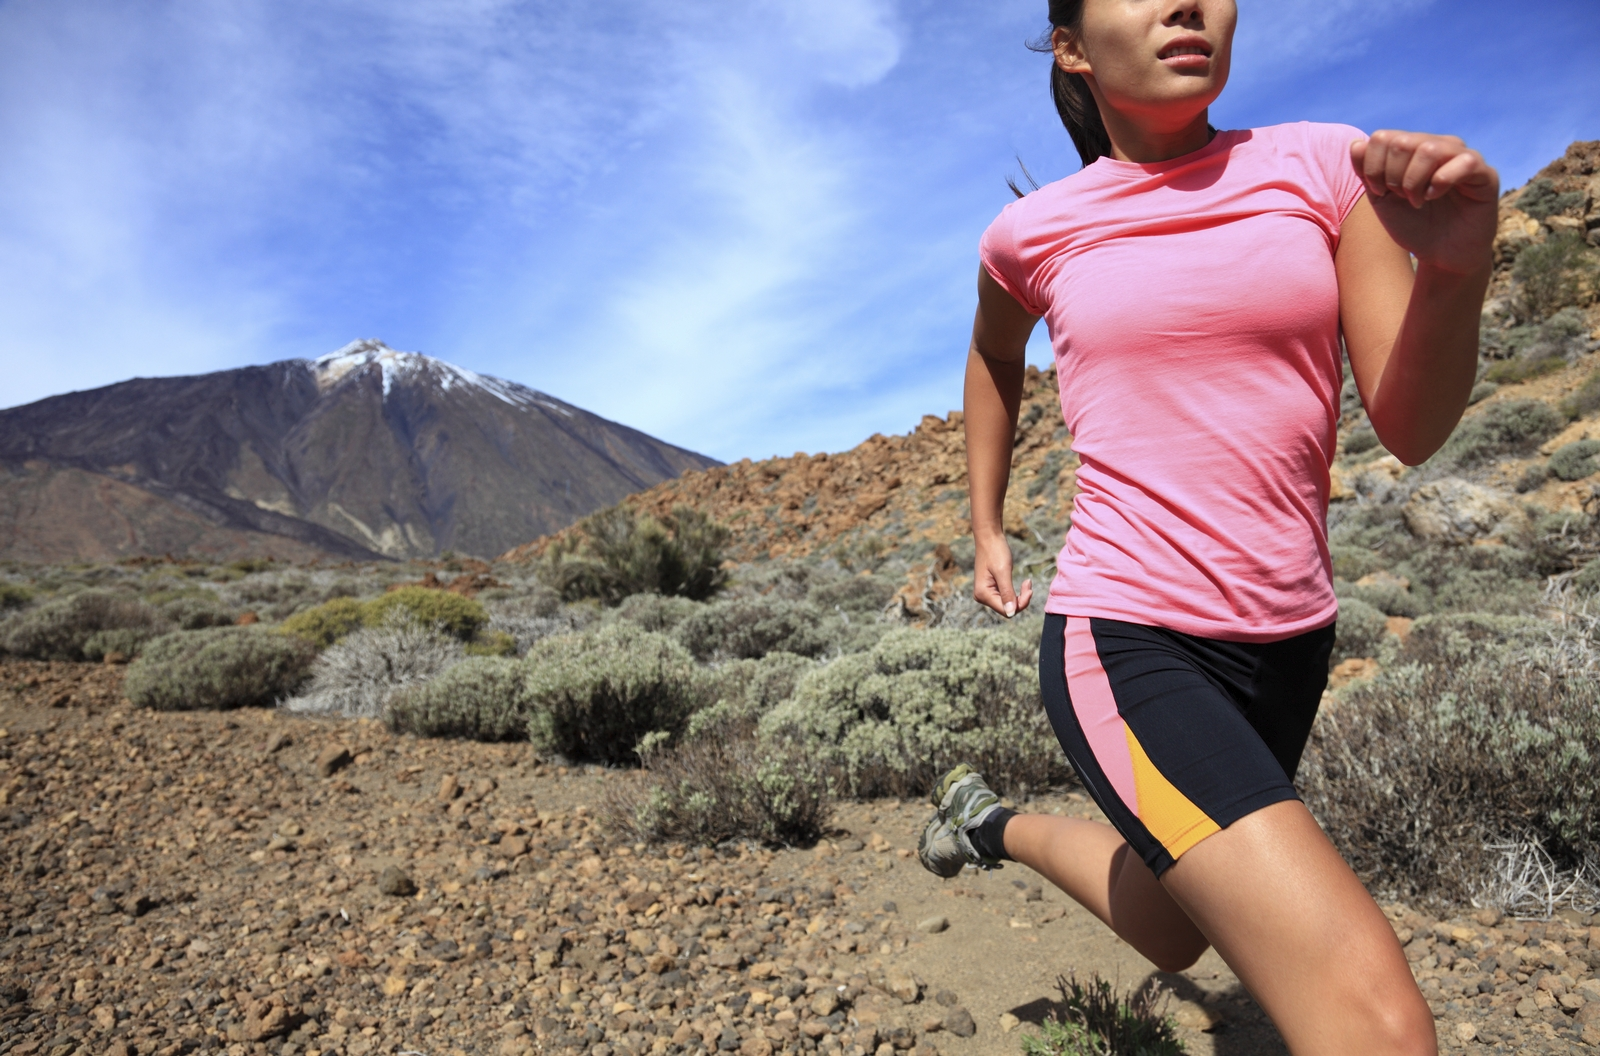 girl-running-cardiovascular-disease-risk-chiropractic